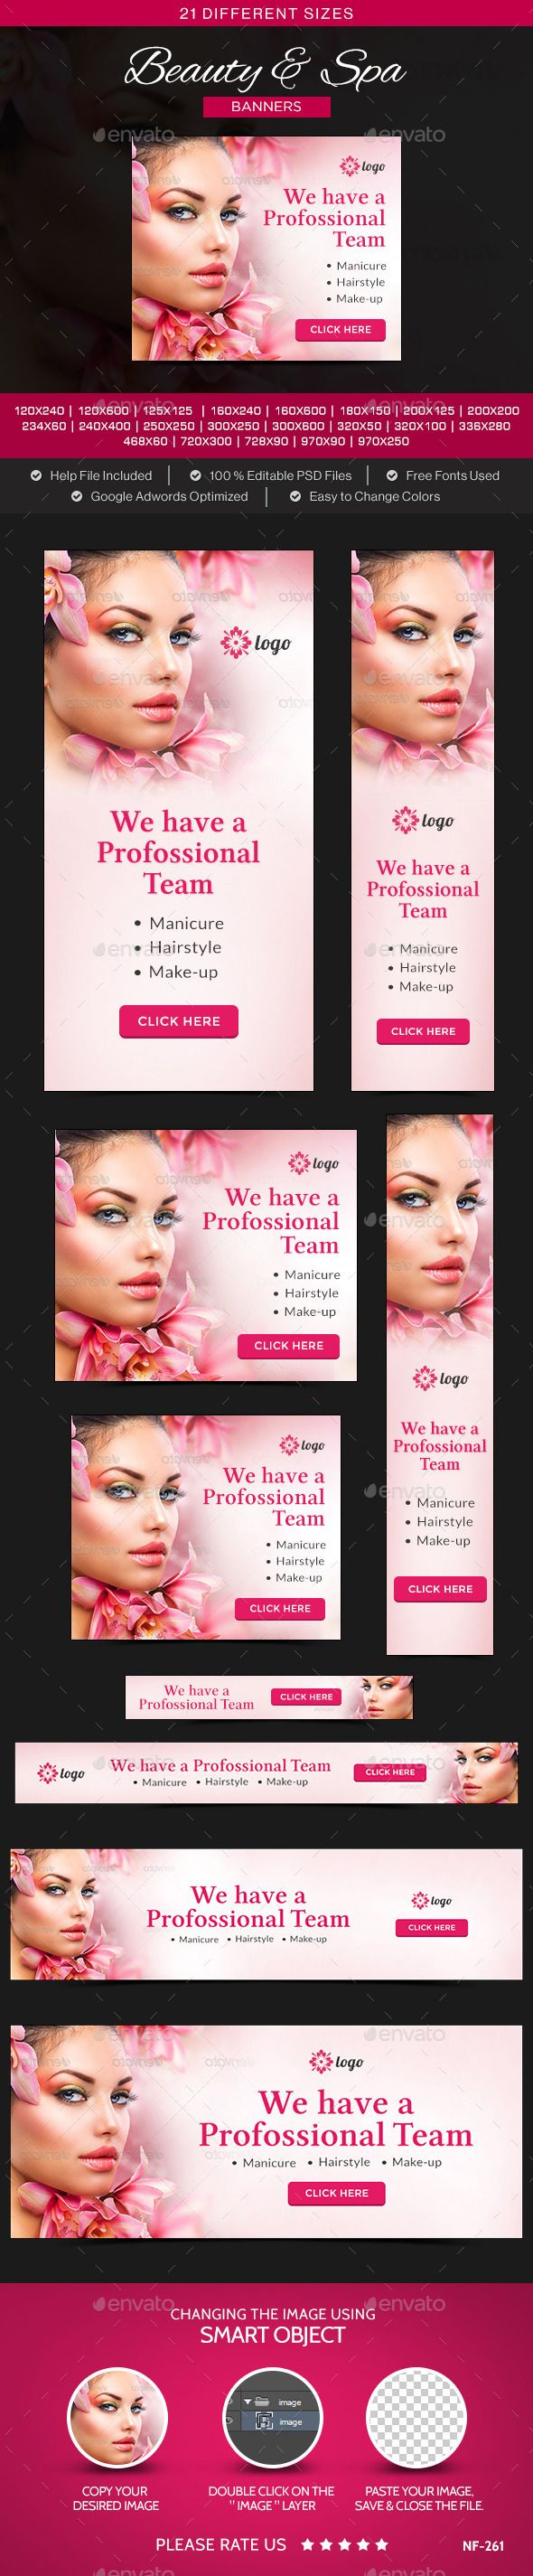 Beauty & Spa Banners - Banners & Ads Web Template PSD. Download here: http://graphicriver.net/item/beauty-spa-banners/10706555?s_rank=1775&ref=yinkira